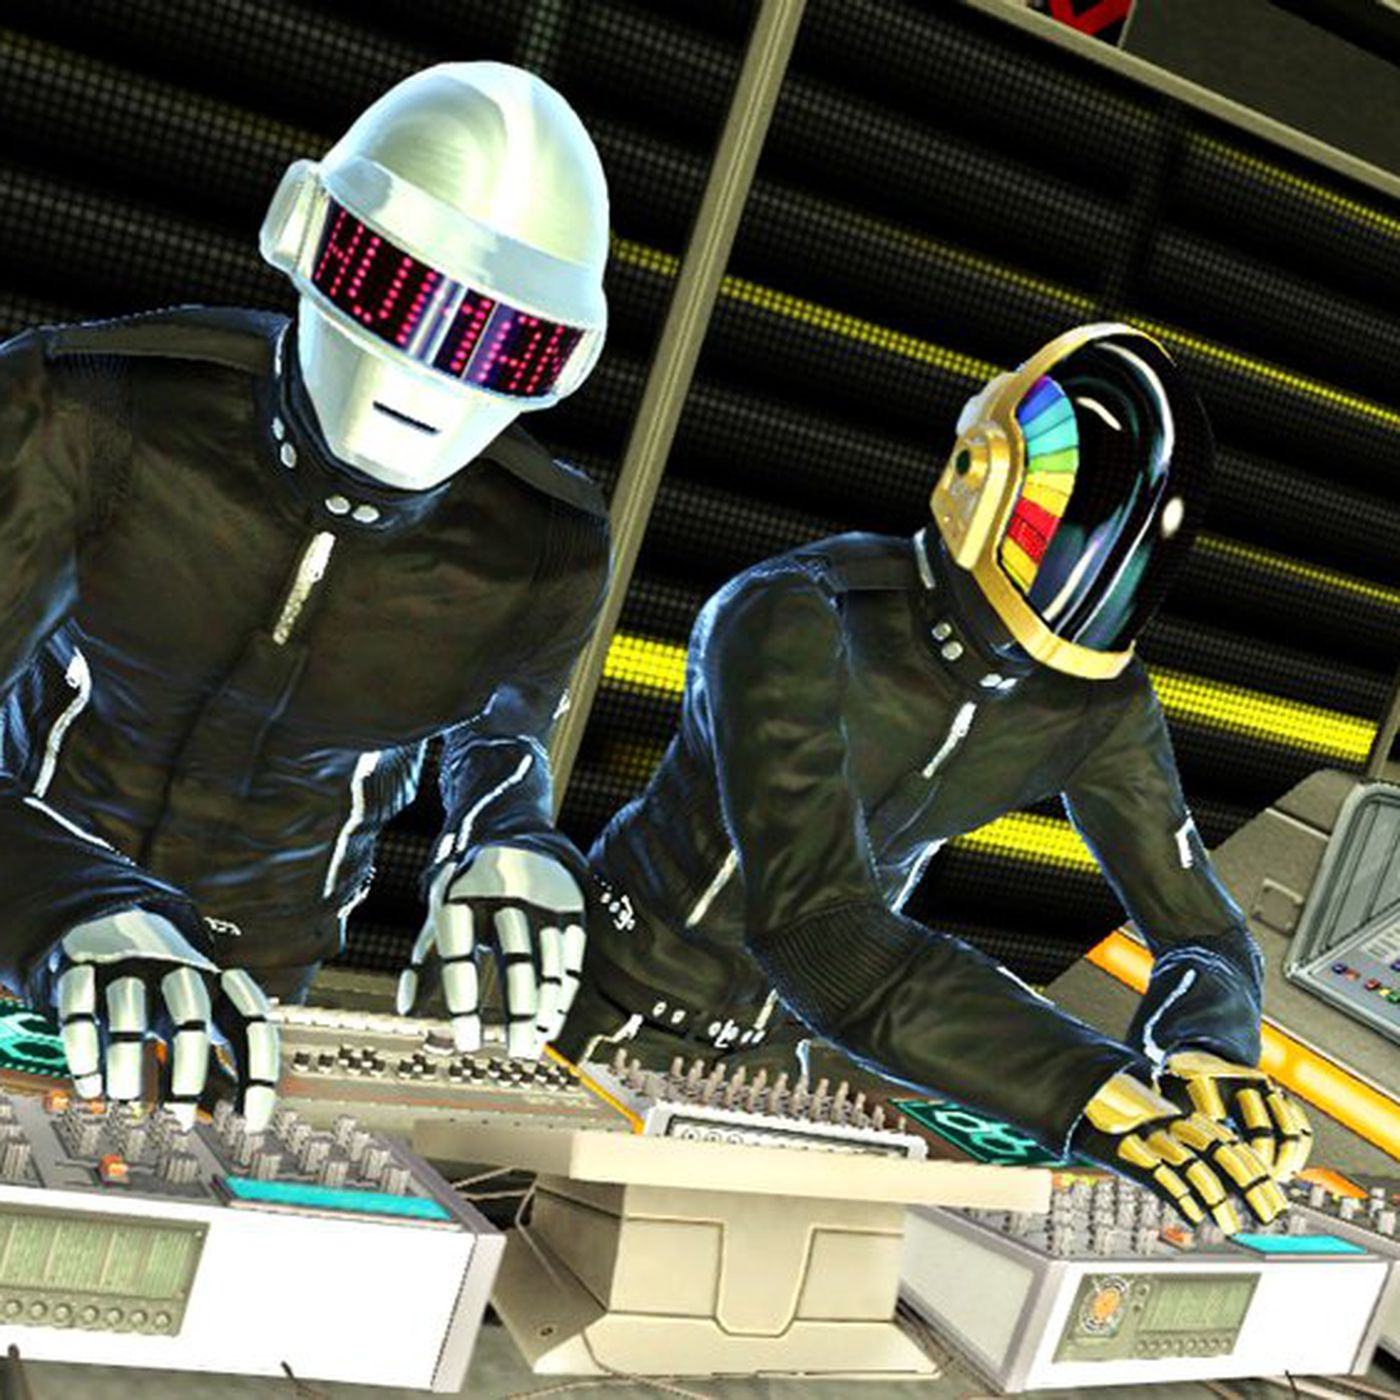 Daft Punk may have split up, but at least we have DJ Hero - Polygon